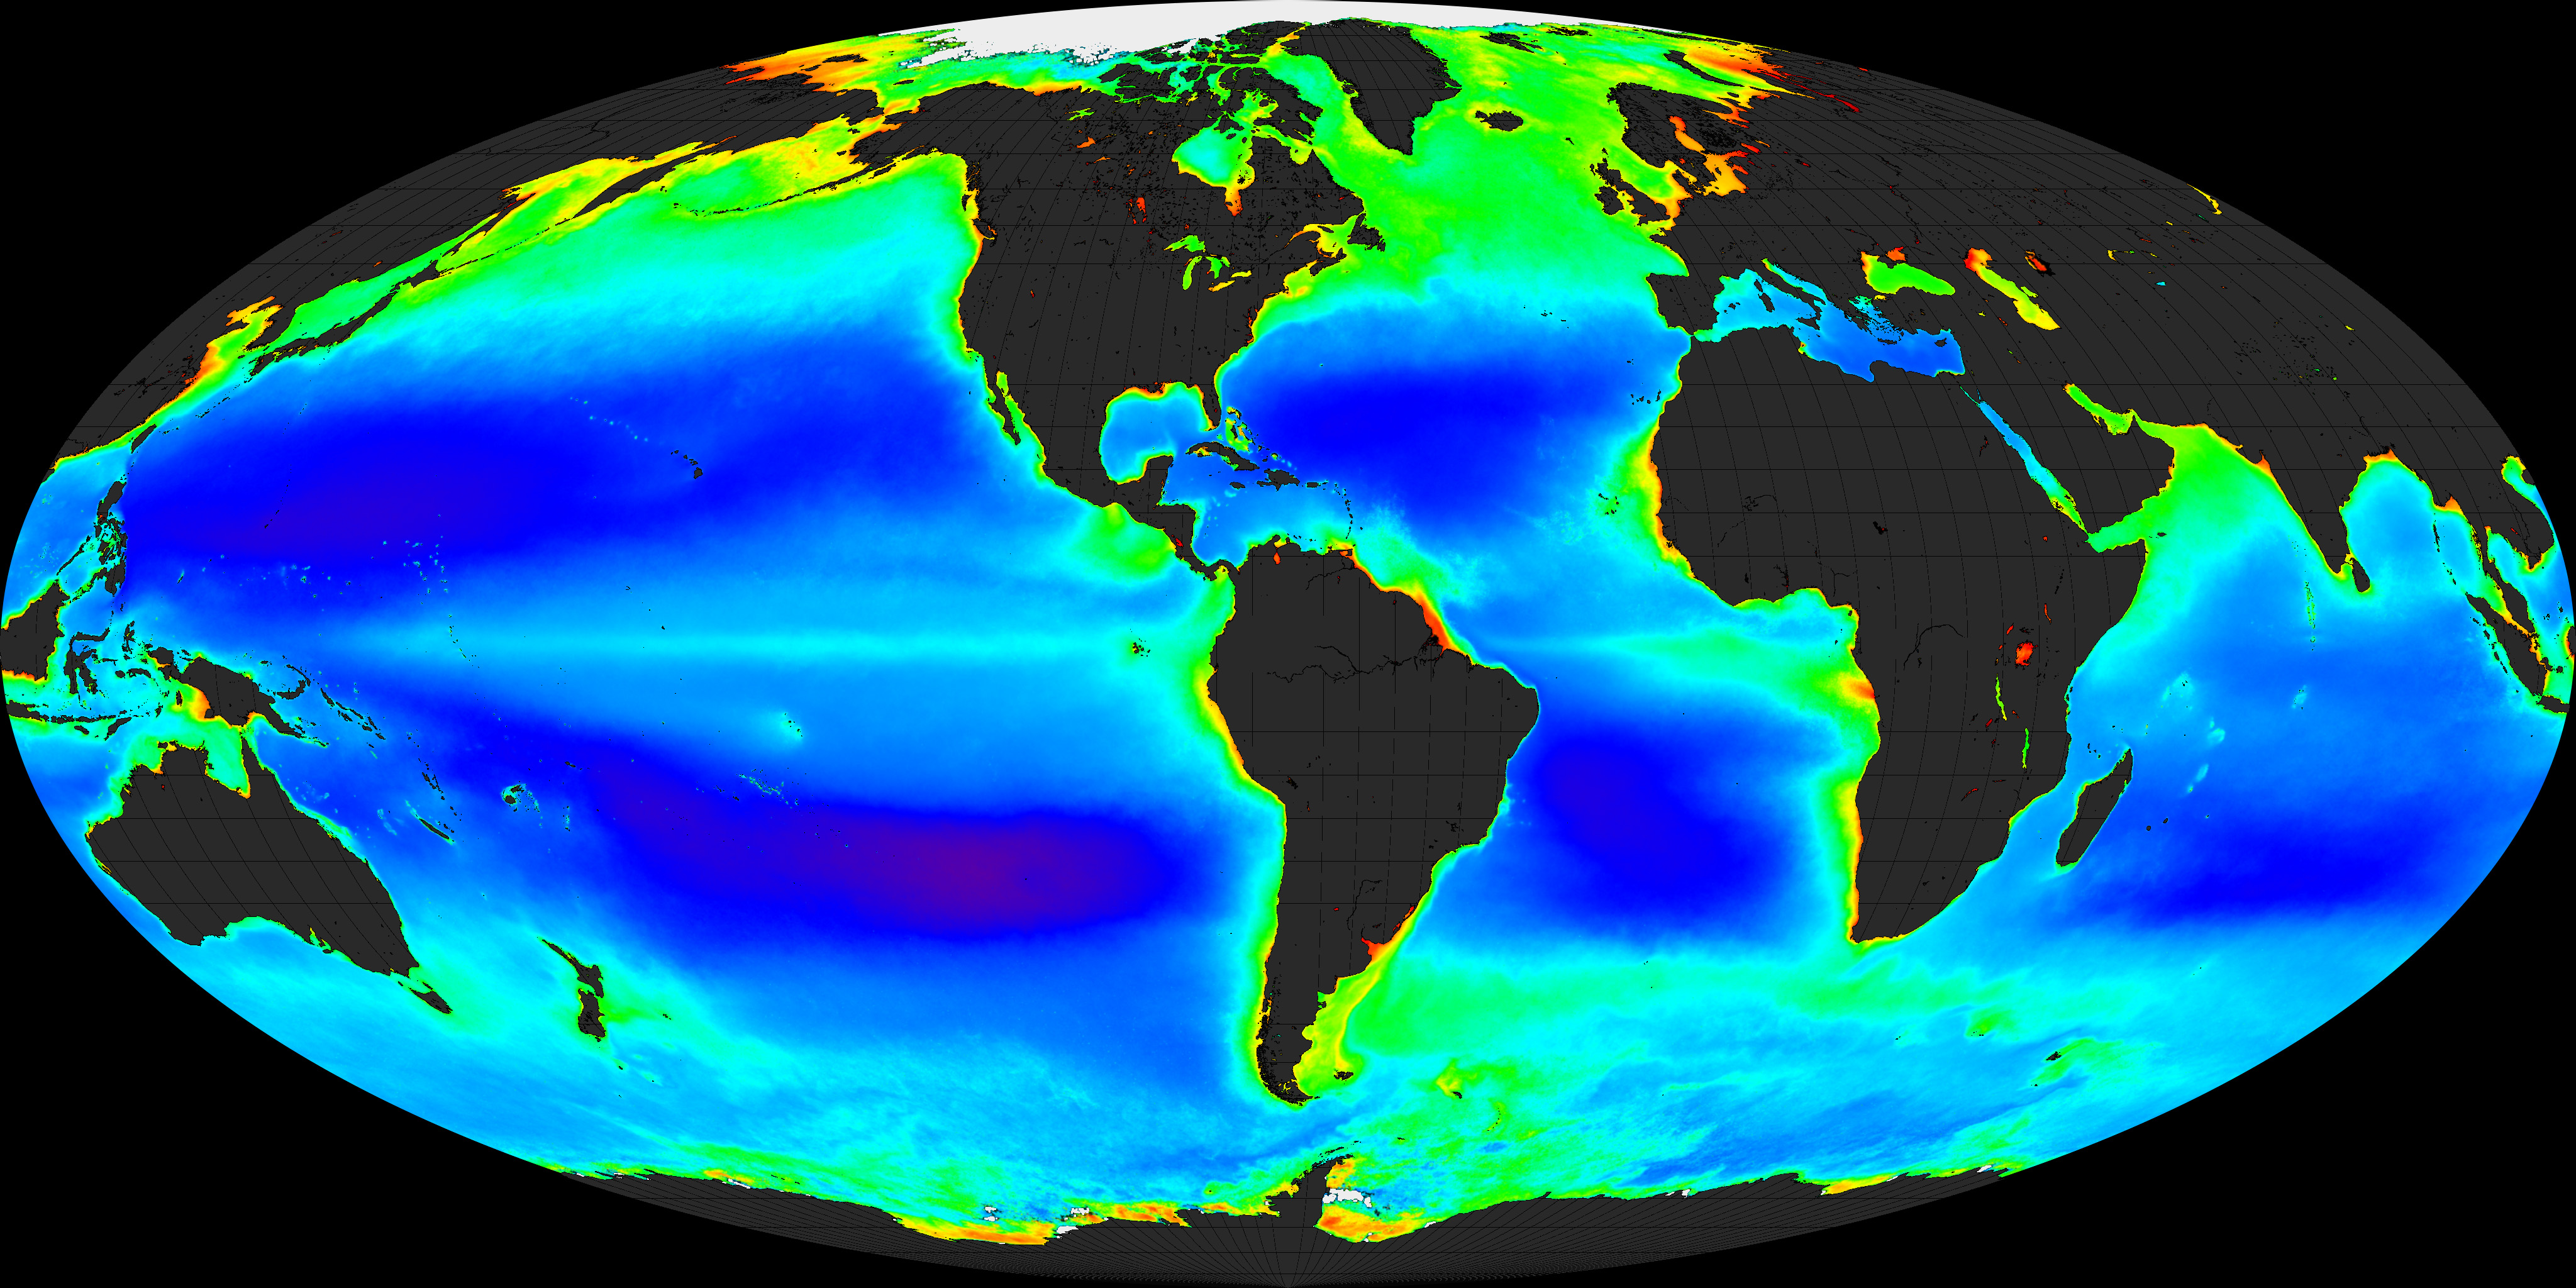 Global Chlorophyll Image Of The Day